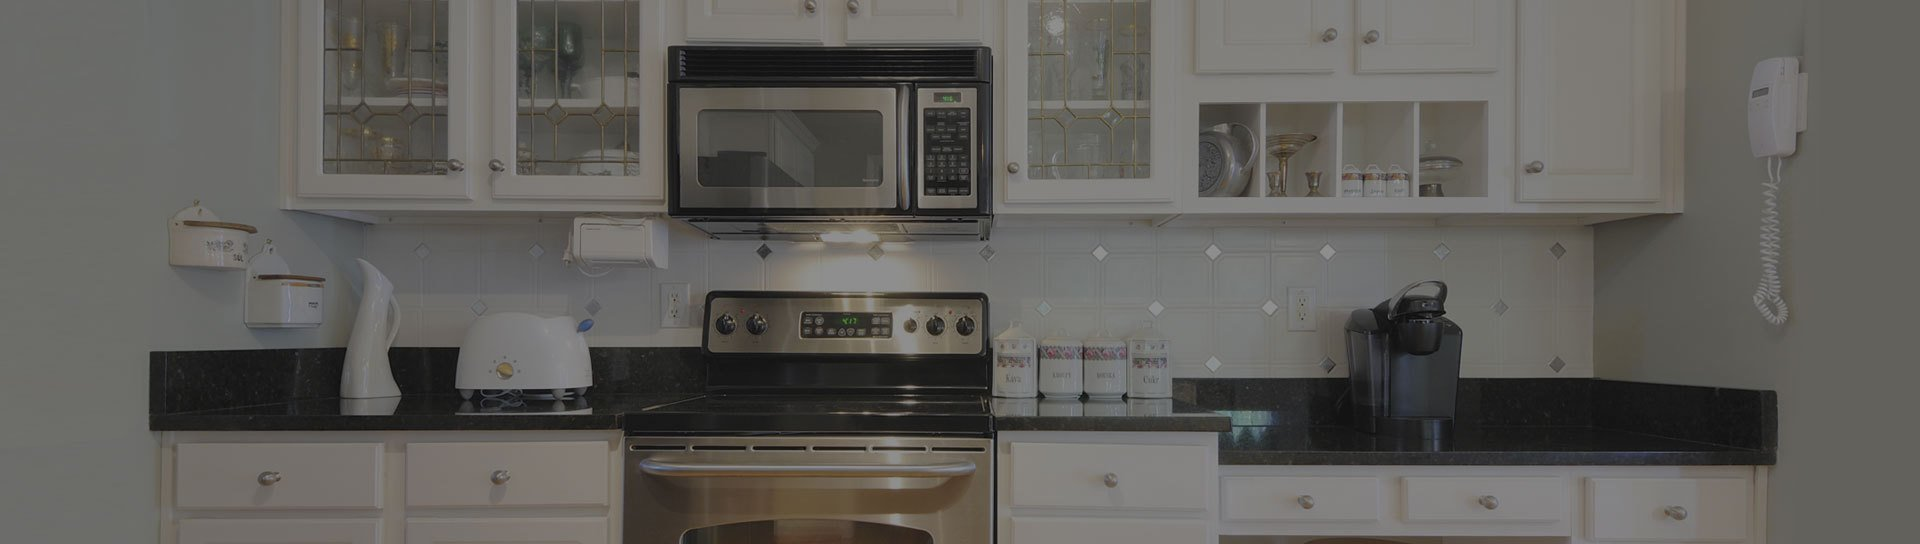 Domestic Kitchen Appliances Appliance Servicing In Cambridge By Main Appliances And Electrical